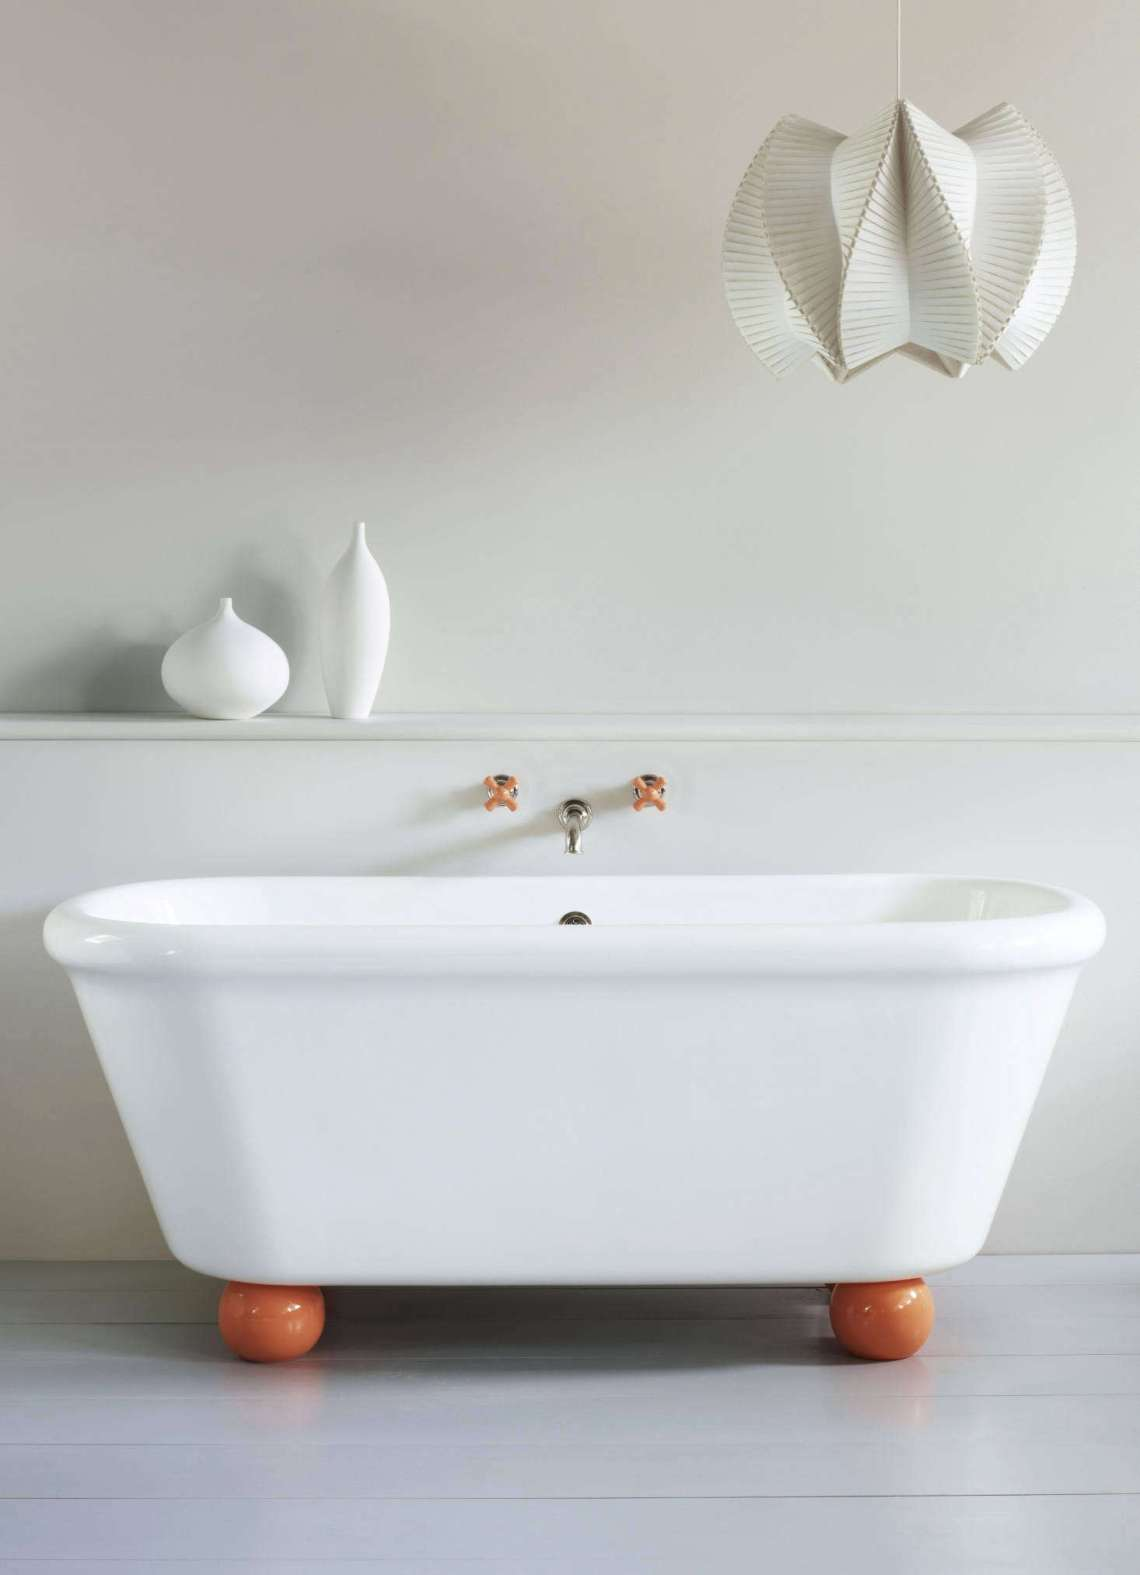 Retro Bath Fixtures In Retro Colors From The Water Monopoly